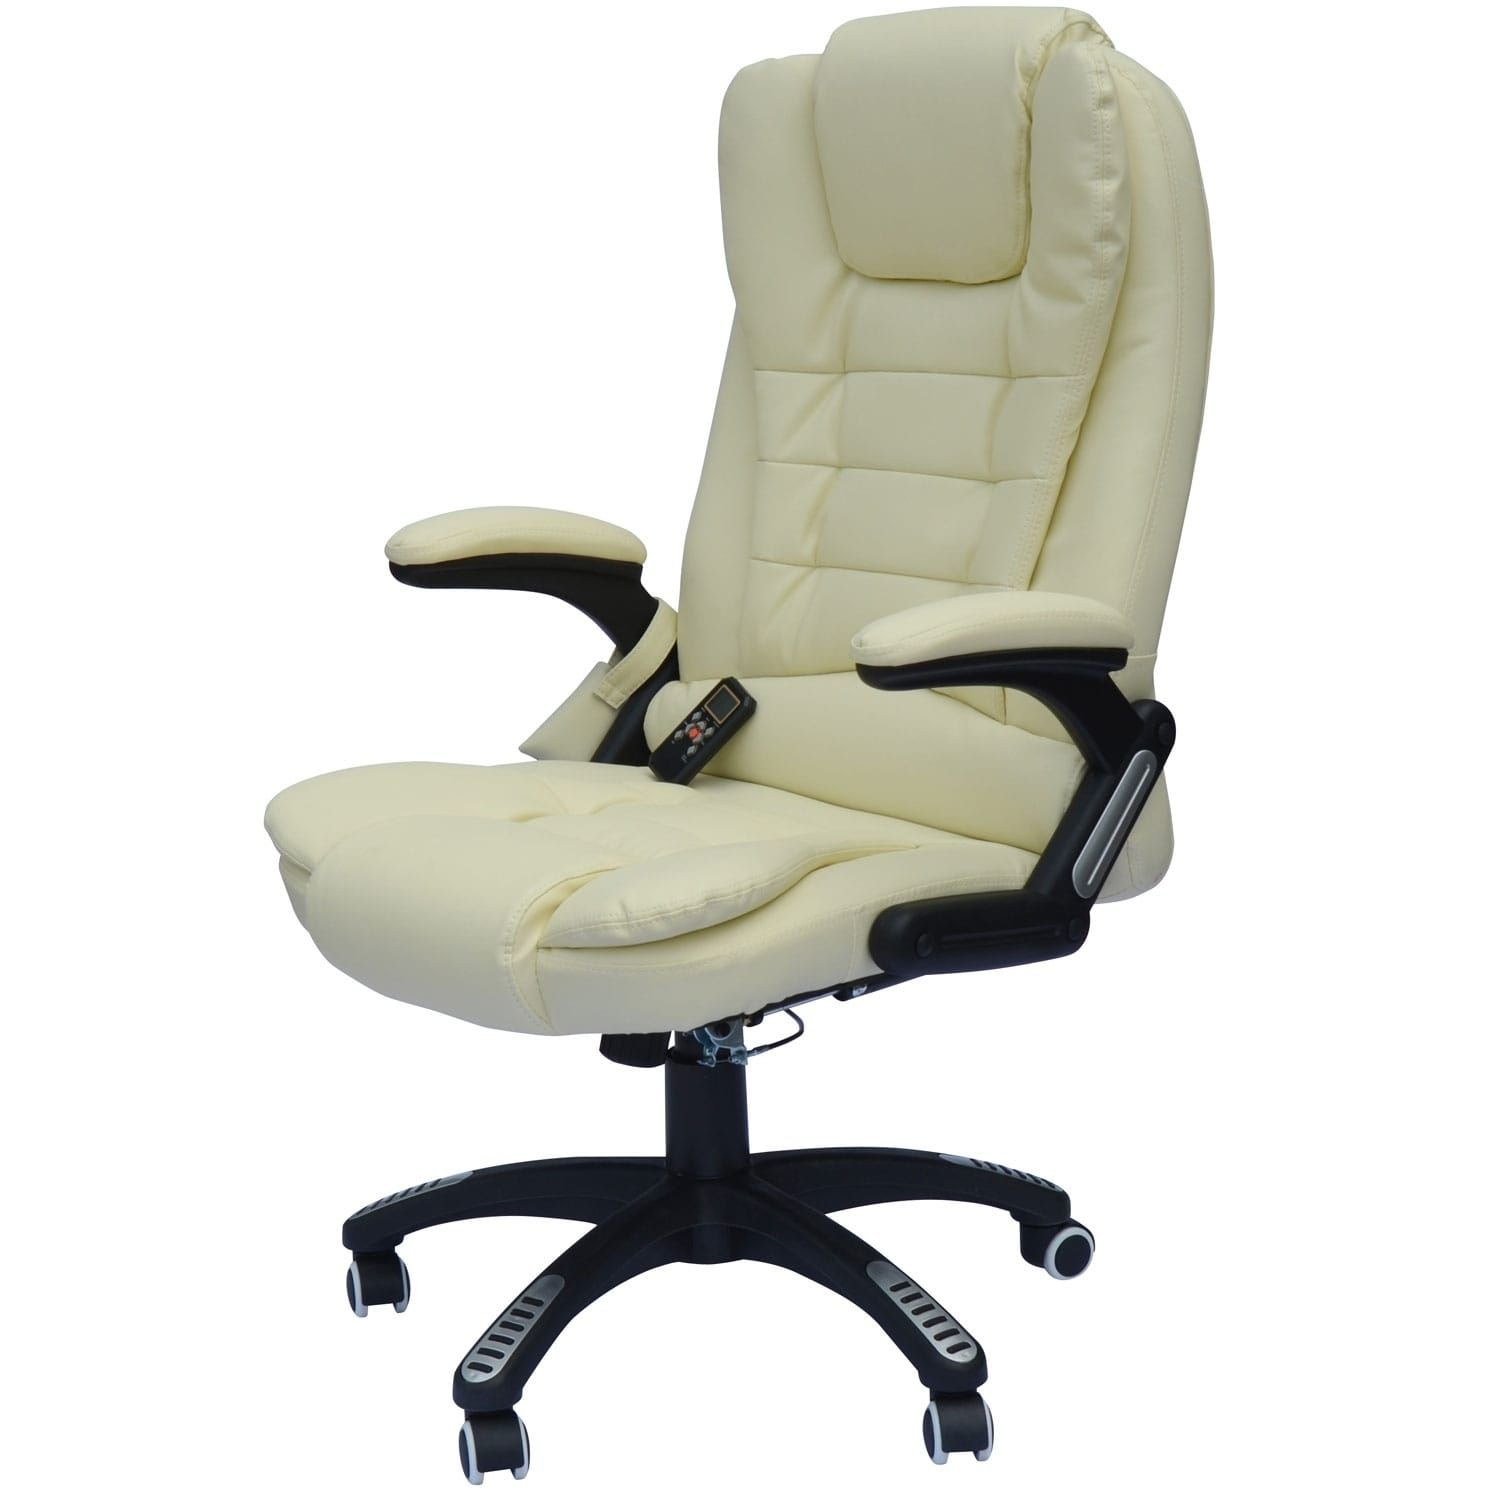 Homcom Faux Leather High Back Executive Heated Massage Office Chair Cream White Massage Office Chair Executive Office Chairs Ergonomic Chair